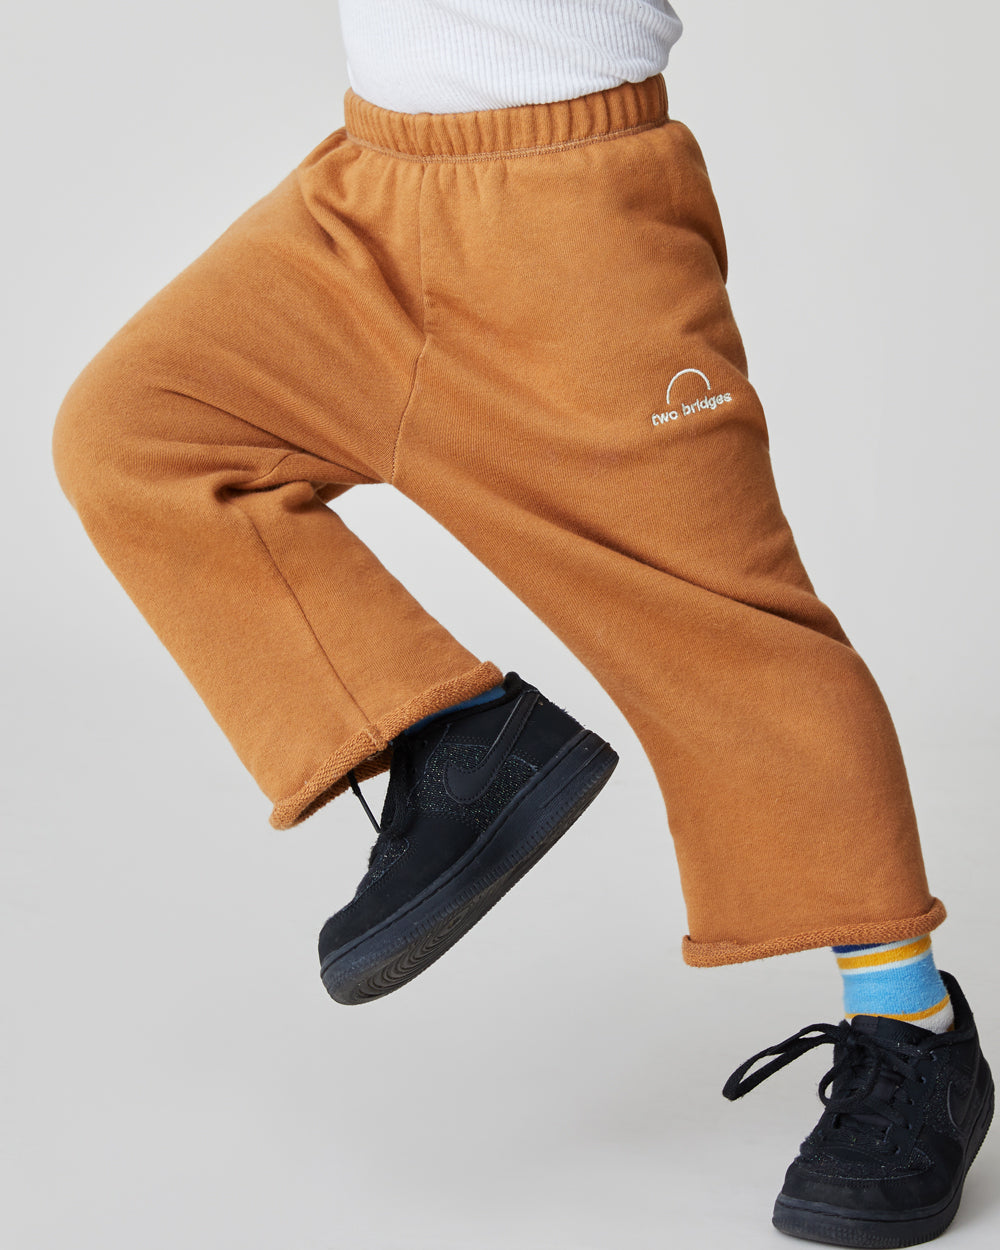 Ollie Sweatpants in Camel